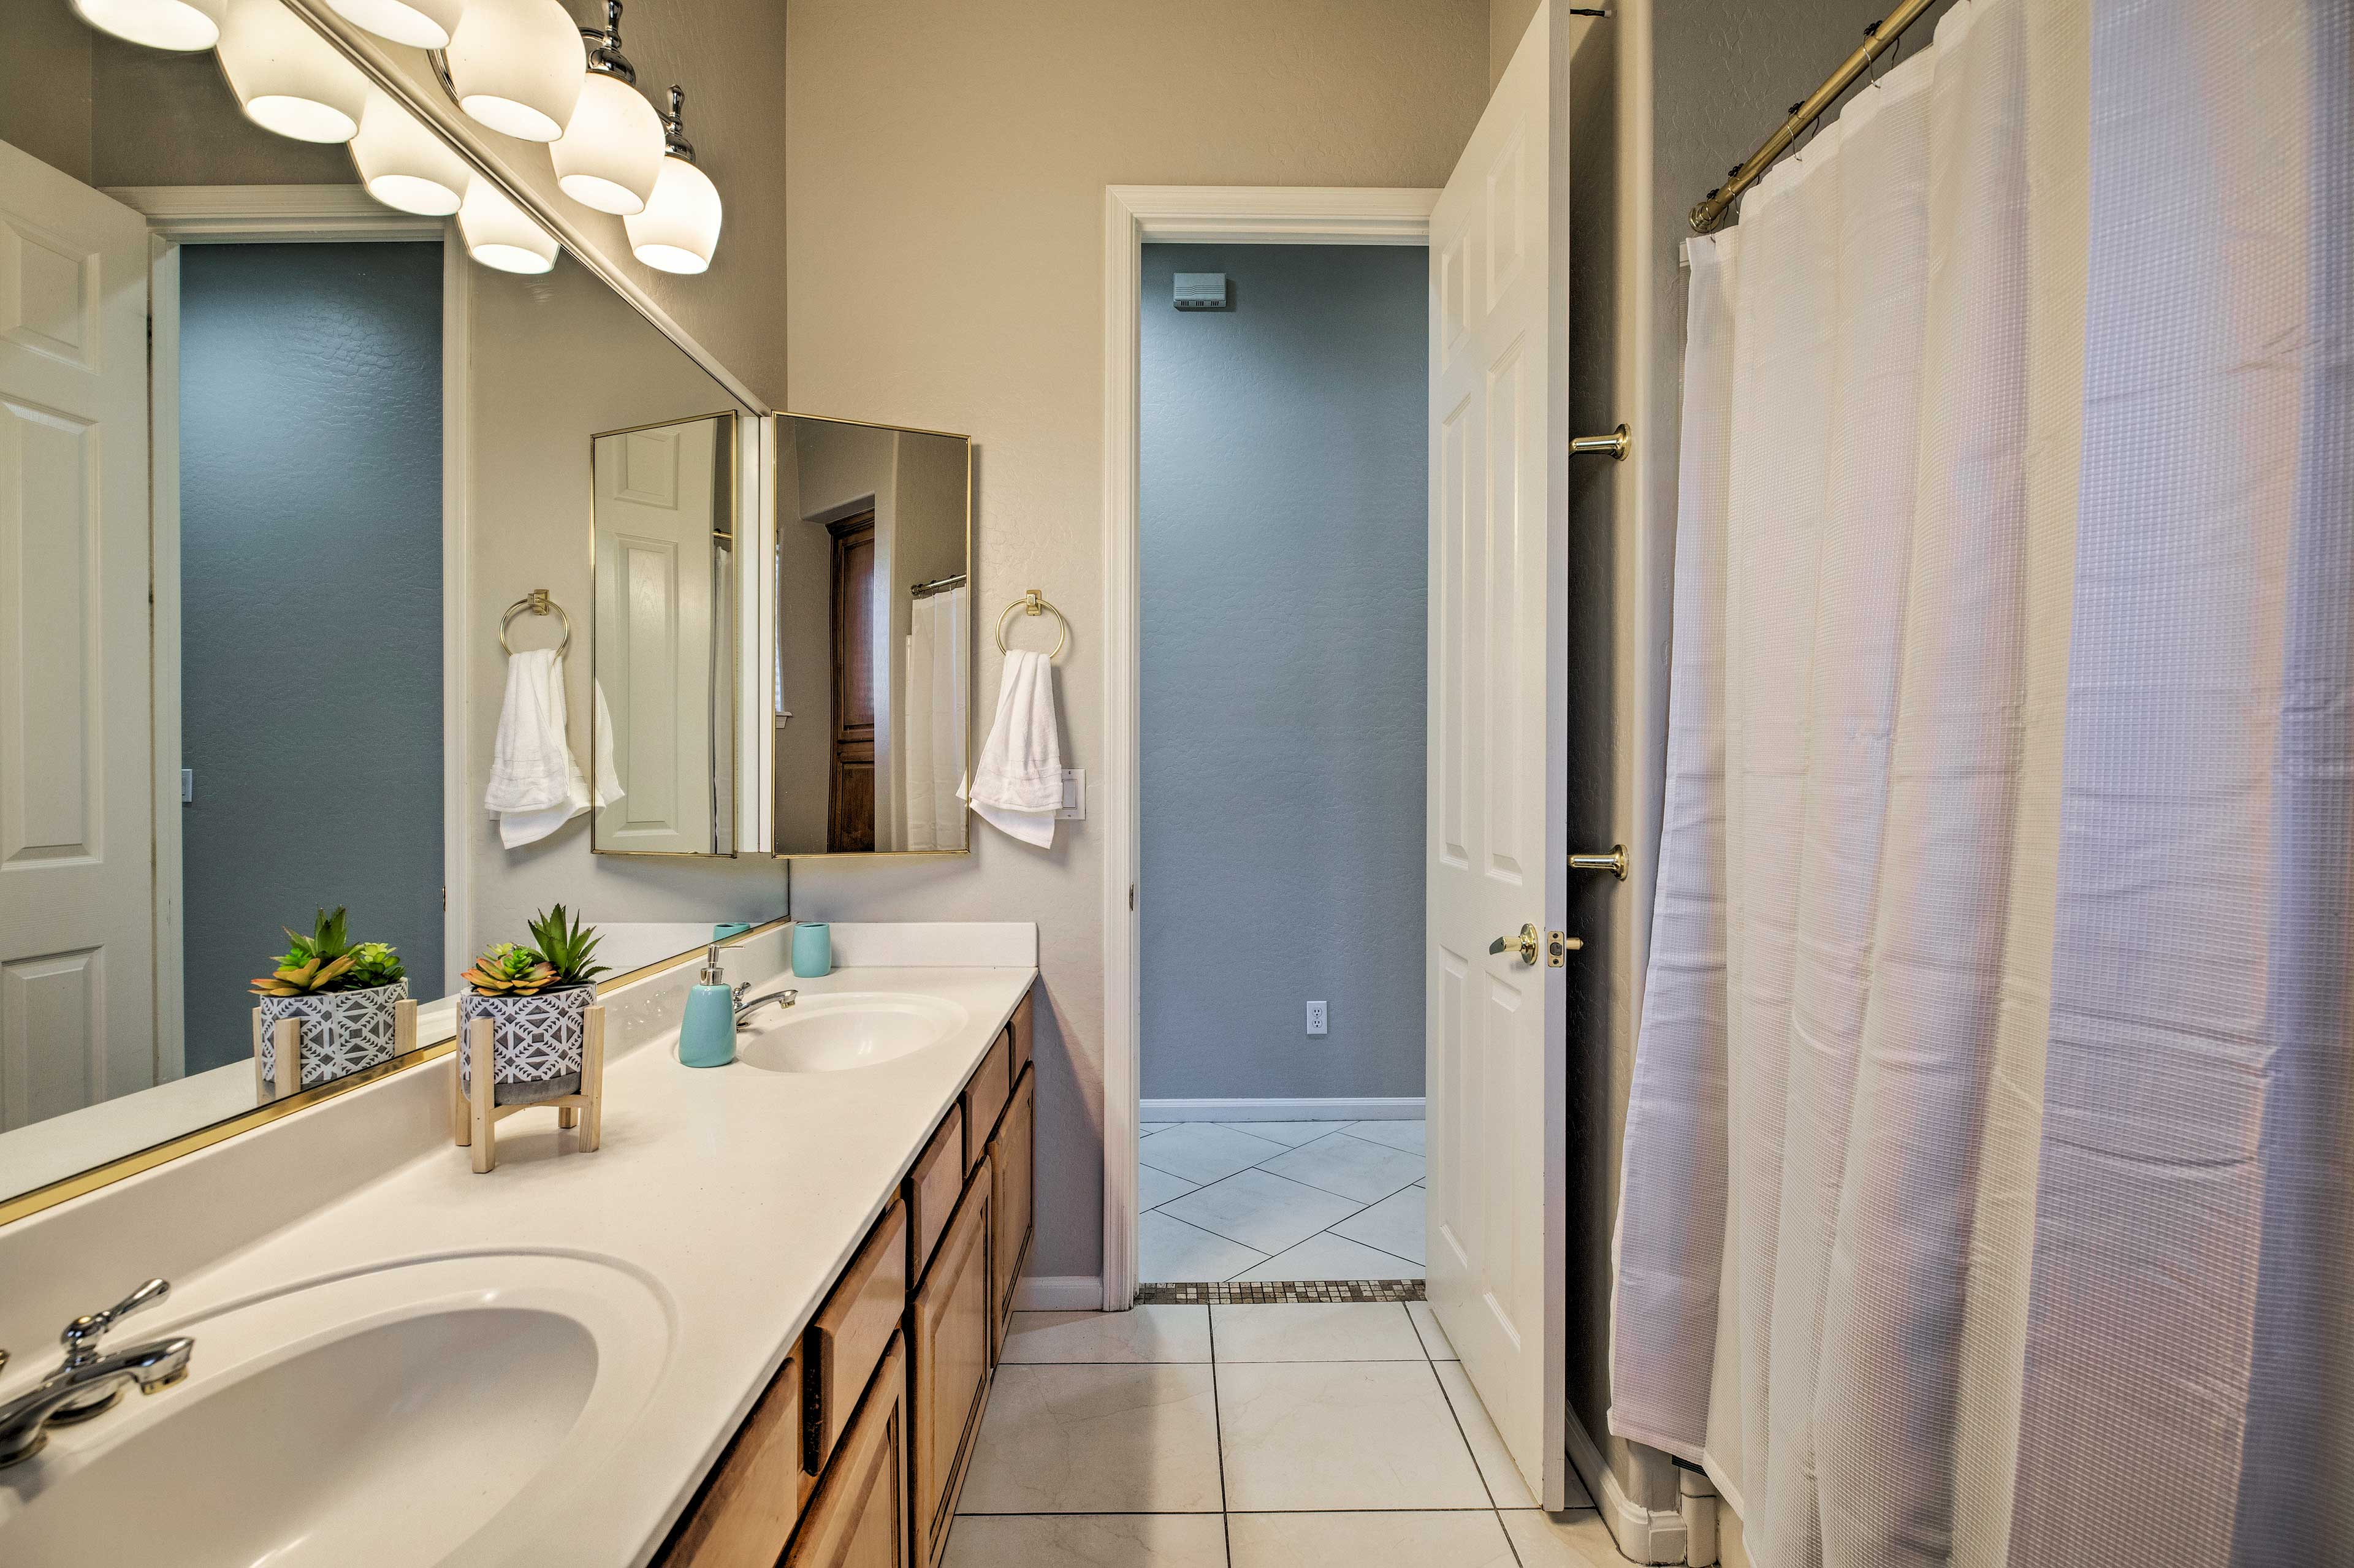 Fresh towels and linens are provided for your convenience.